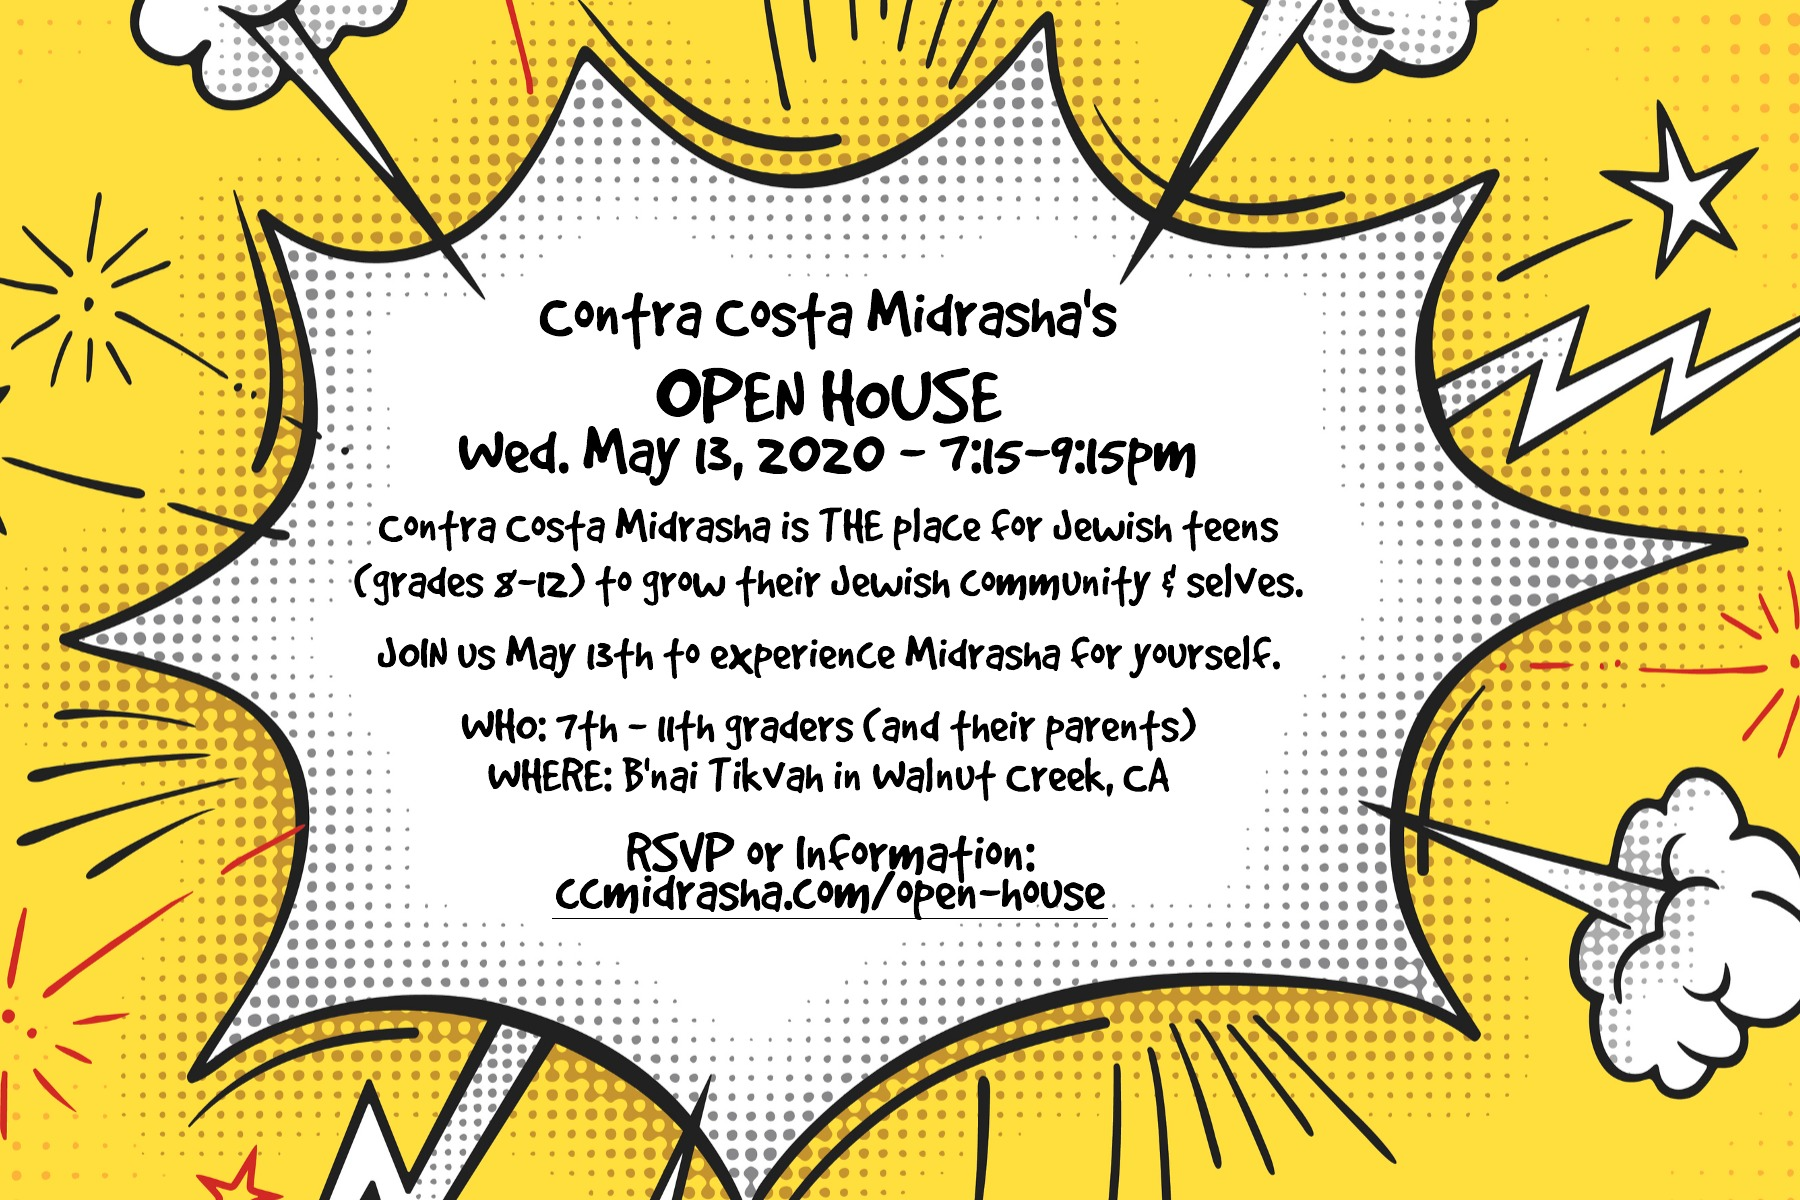 CCM Open House 2020 (1)